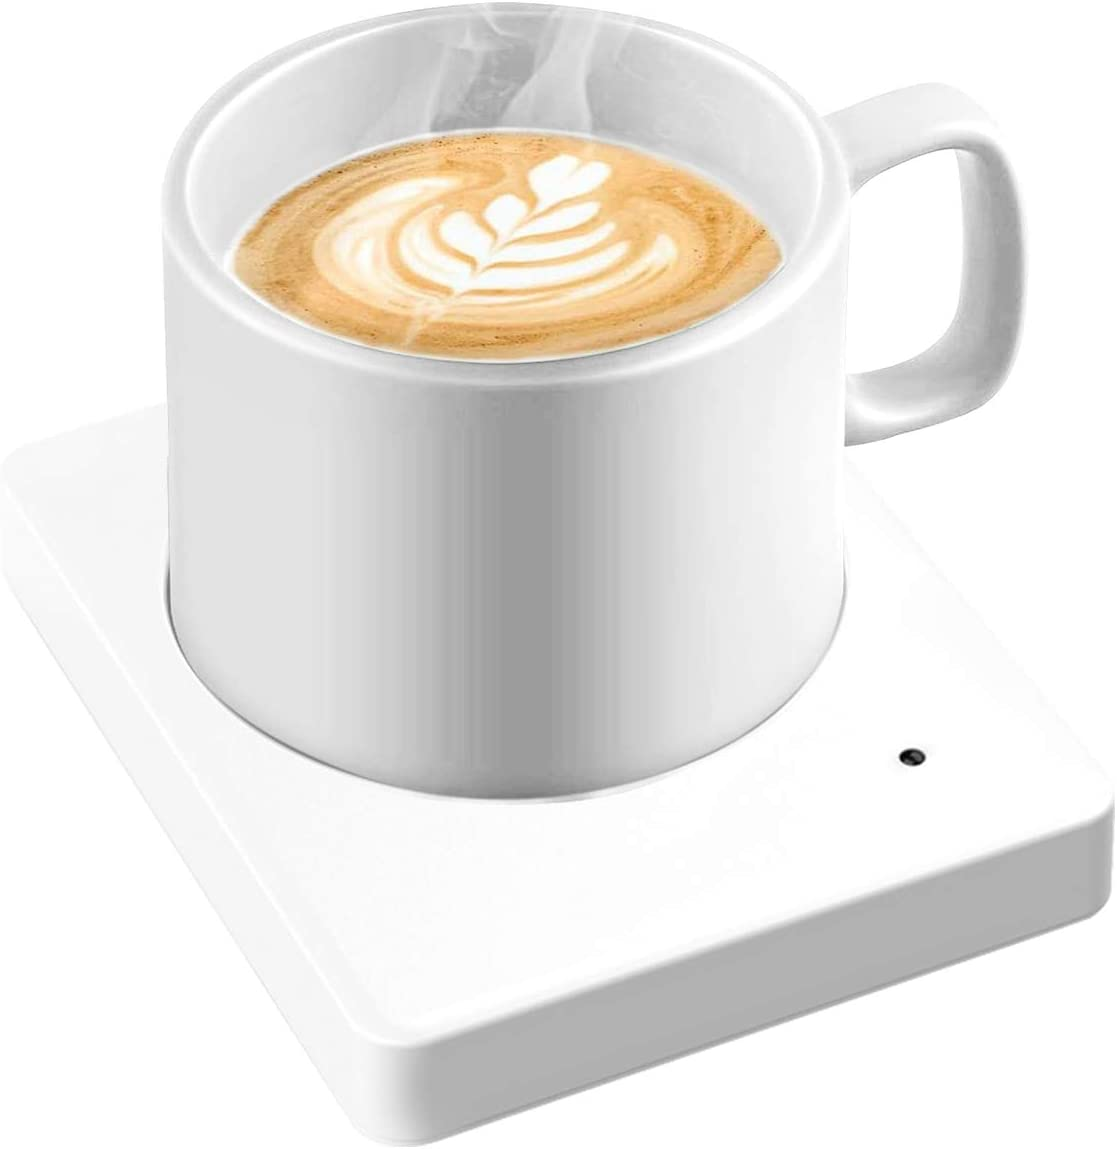 Coffee Mug Warmer - Coffee Warmer with Auto Shut Off,Smart Temperature Setting Warmer Plate for Coffee, Milk, Tea, Beverage and Hot Cocoa.(No cup)